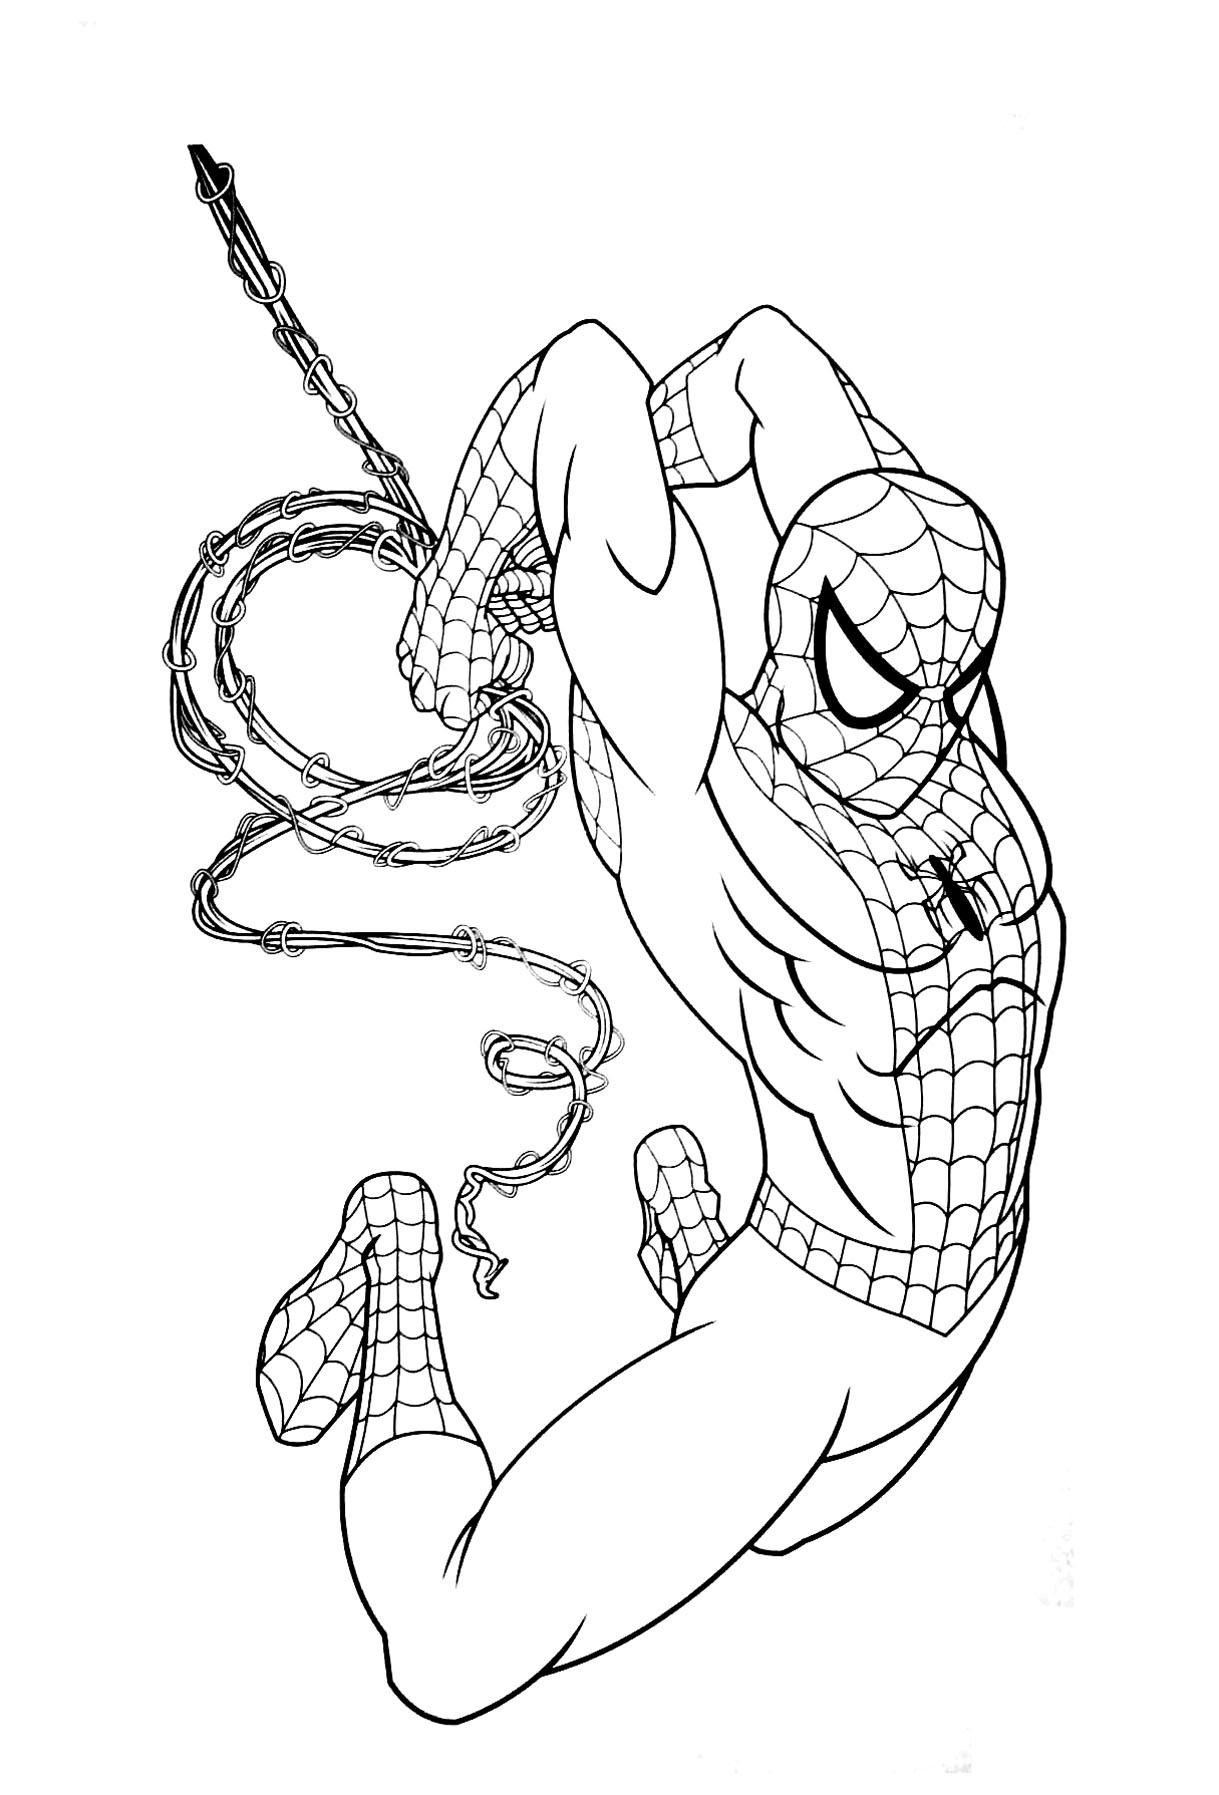 Spiderman Free To Color For Children